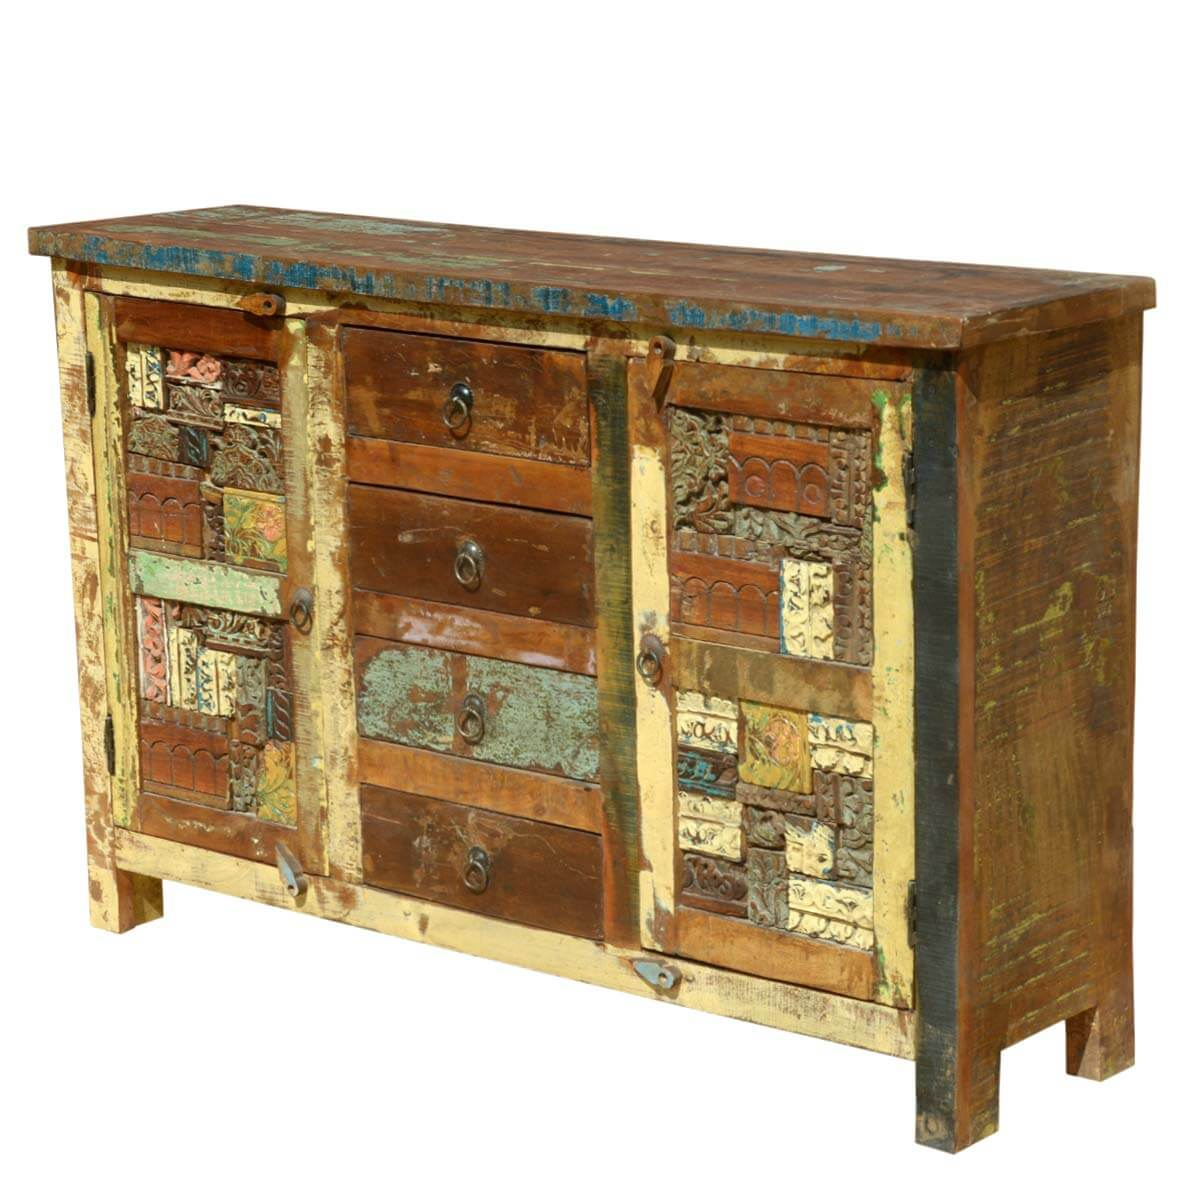 Wood Elevation For Buffet : Reclaimed wooden mosaic rustic sideboard buffet cabinet